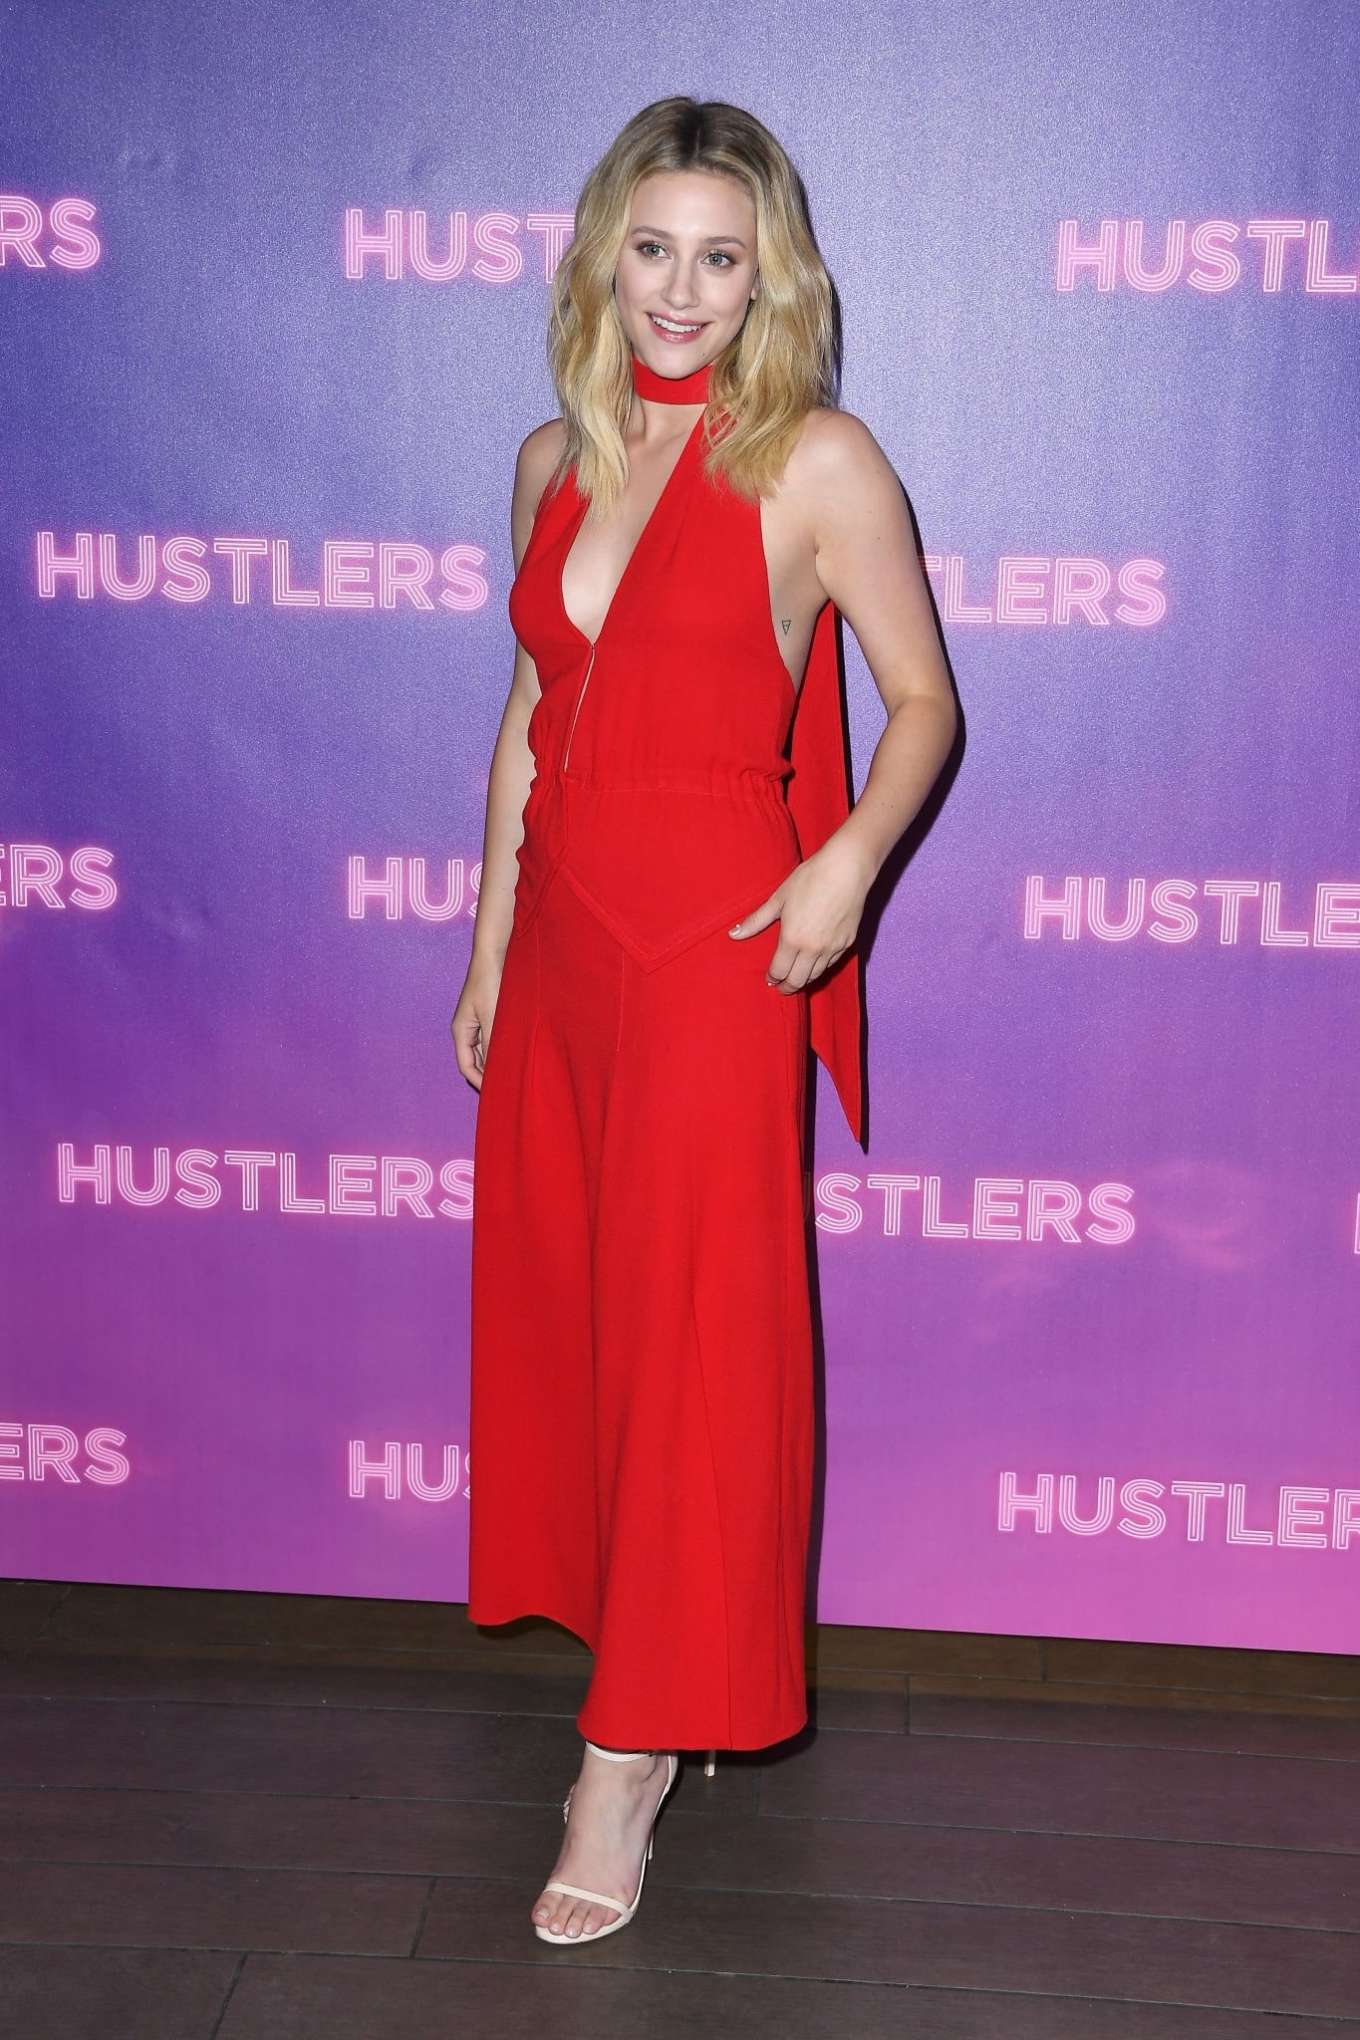 Lili Reinhart - 'Hustlers' Photo Call at Four Seasons Los Angeles at Beverly Hills